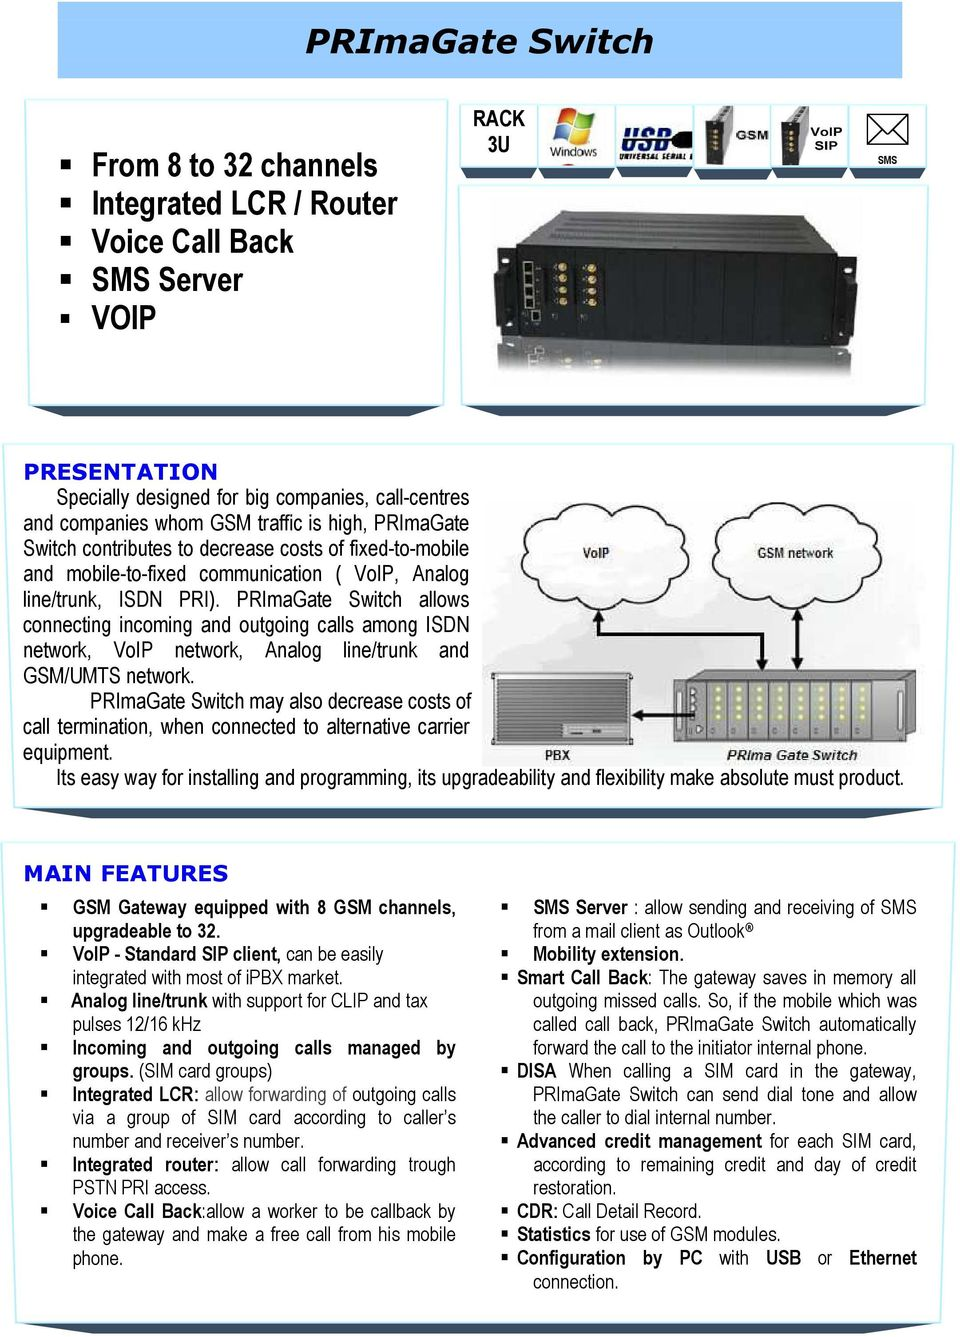 PRImaGate Switch allows connecting incoming and outgoing calls among ISDN network, VoIP network, Analog line/trunk and GSM/UMTS network.